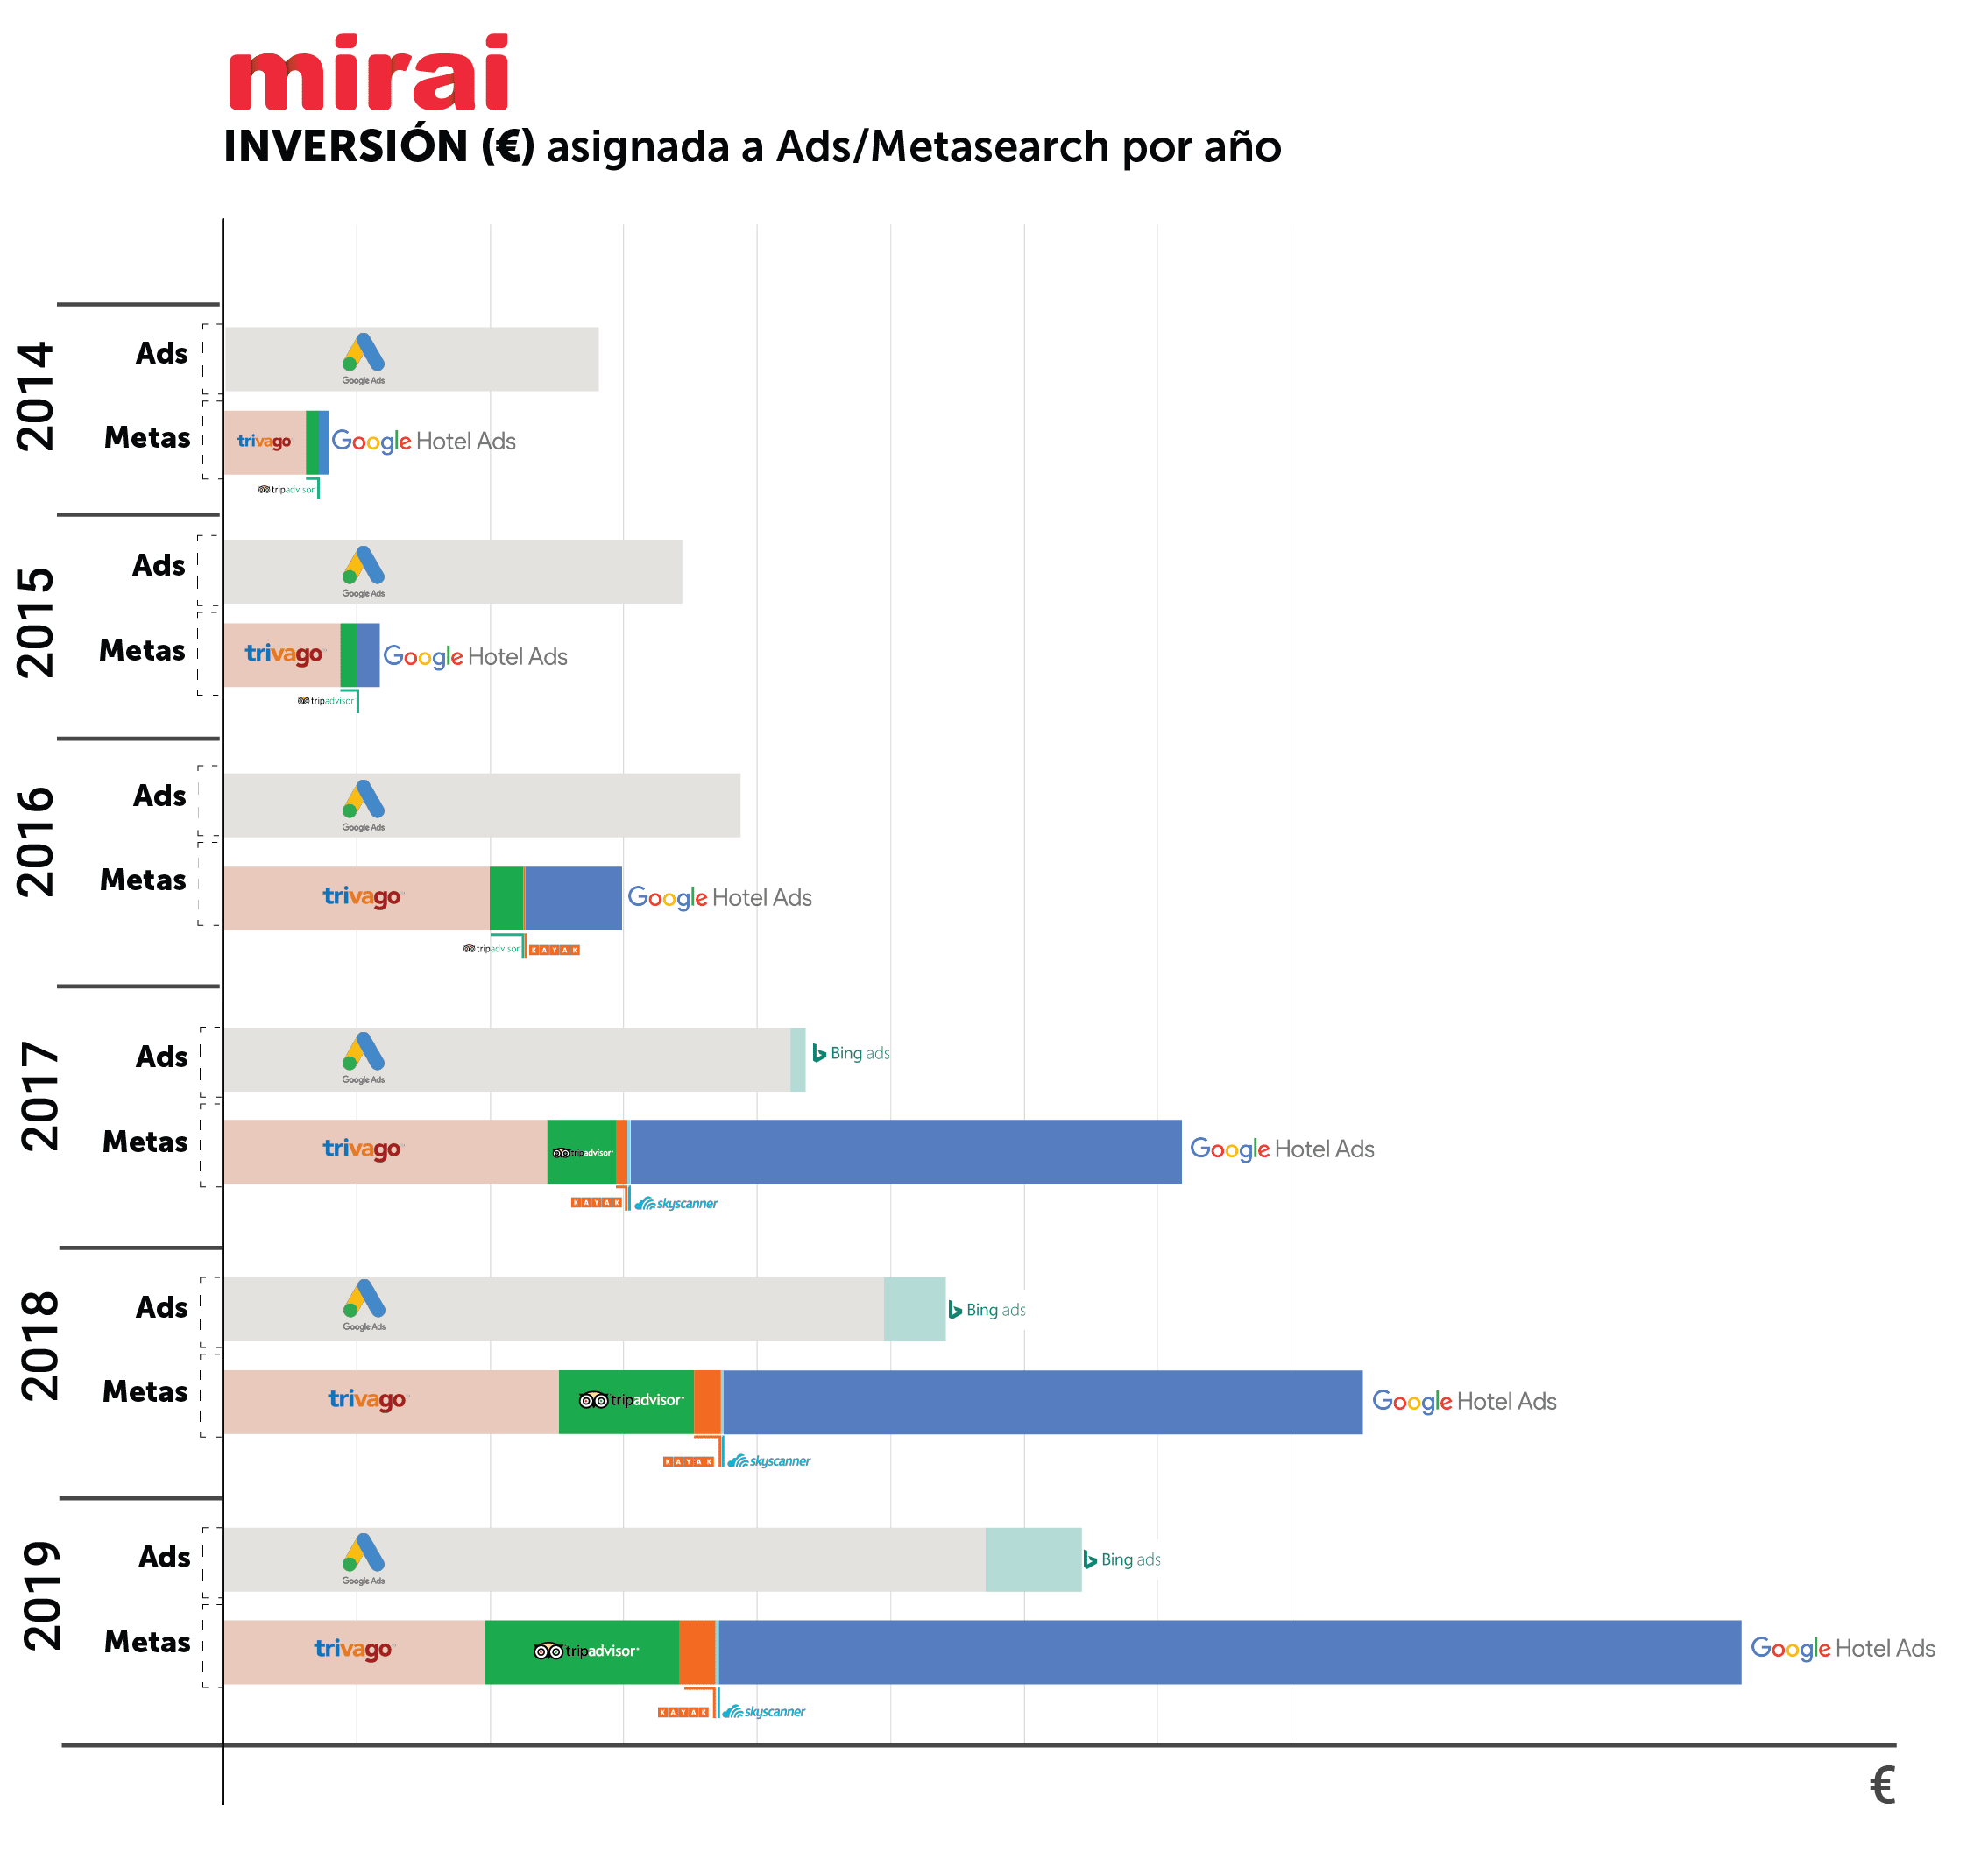 Inversión total en Ads y metasearch